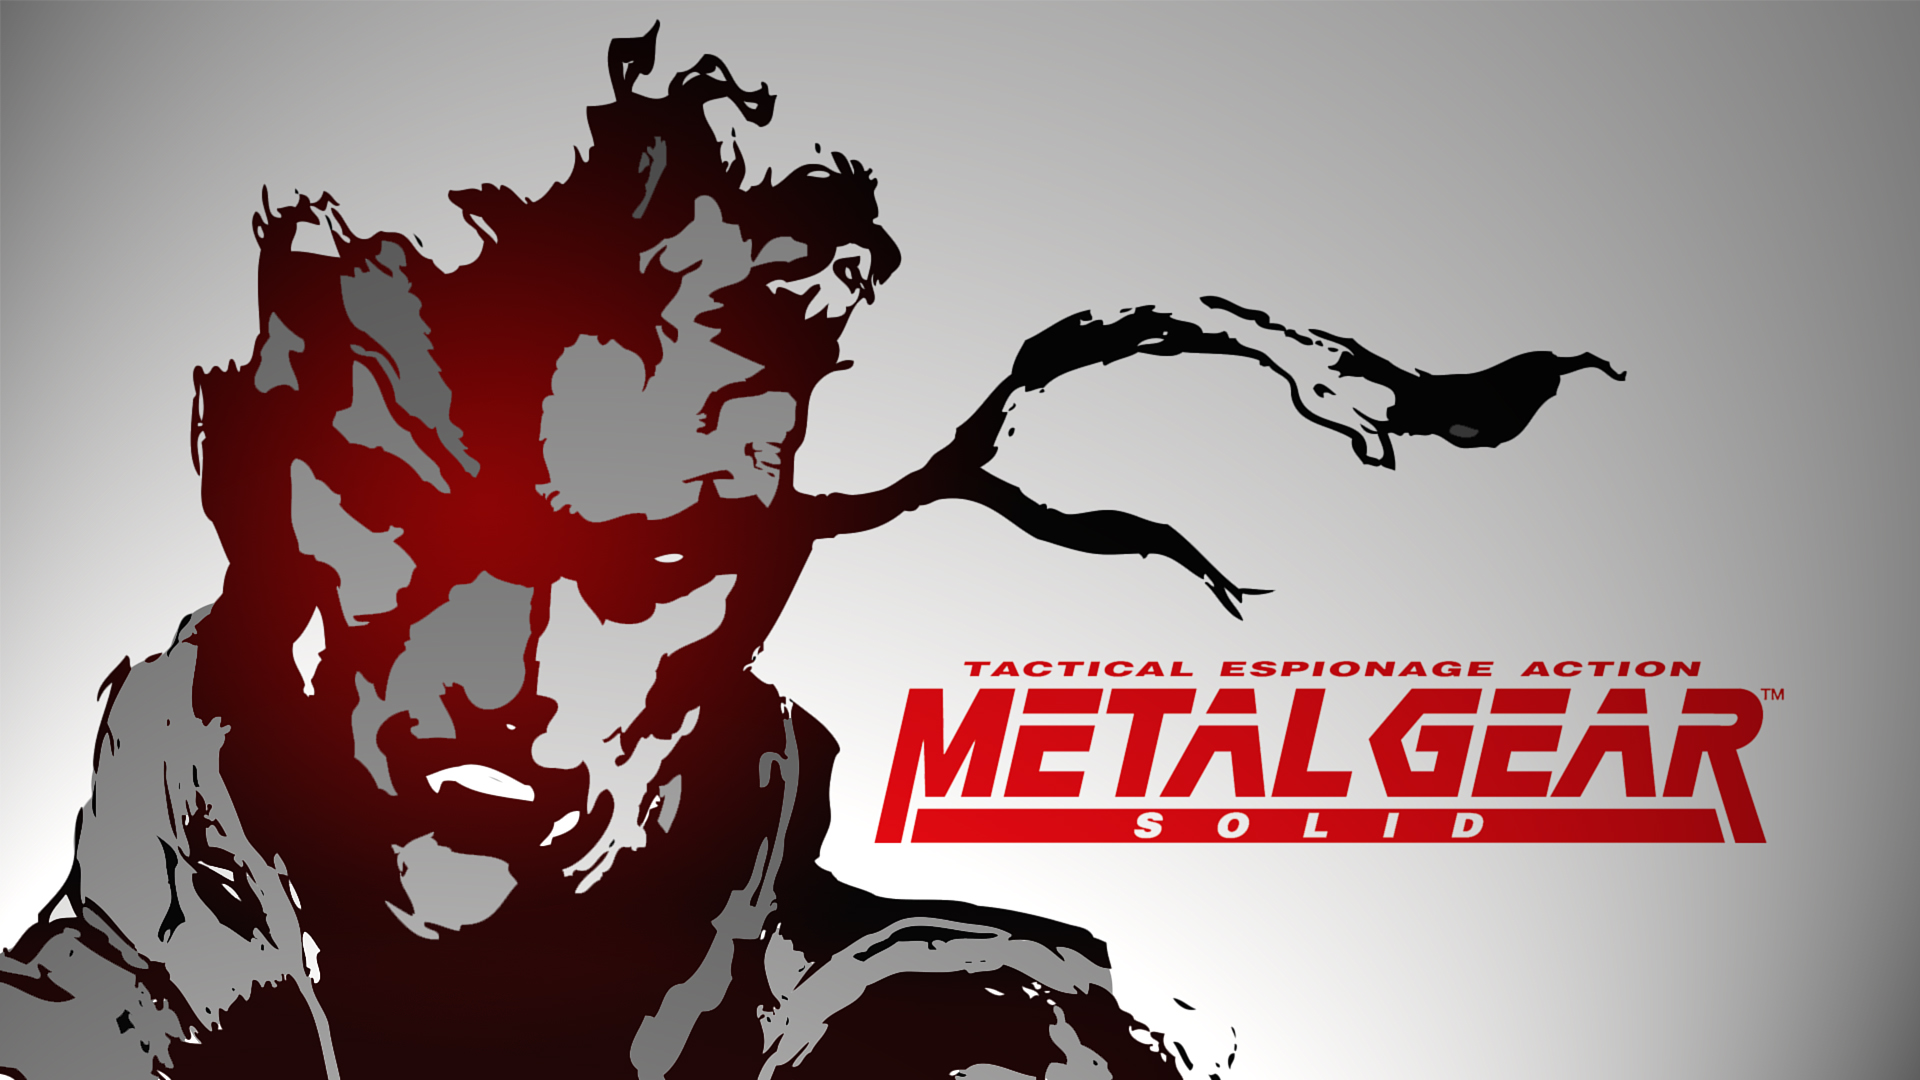 metal gear solid 1 wallpaper 2 by quixware d4yfk9a